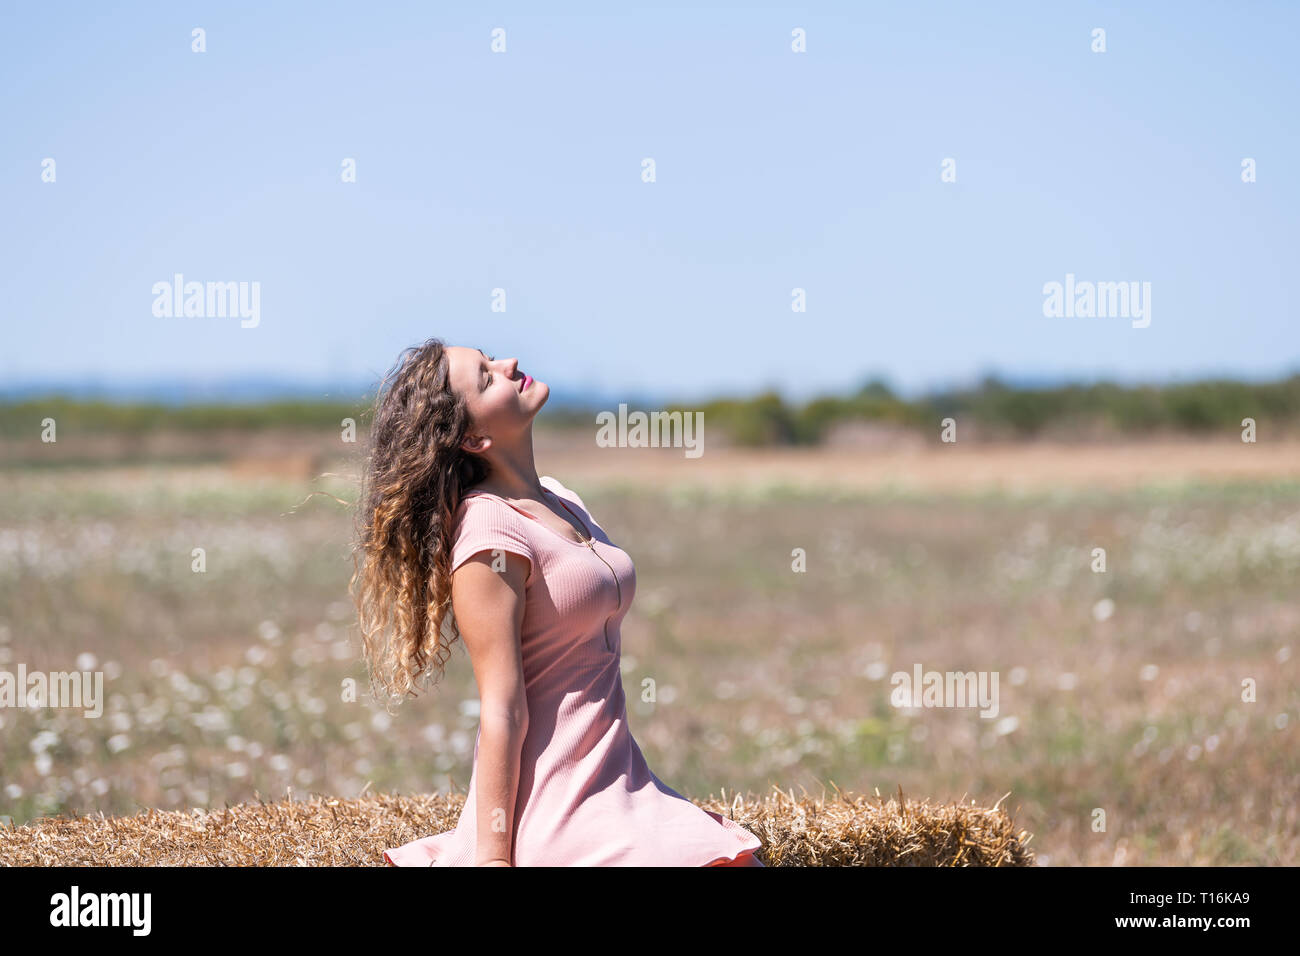 Countryside landscape in Tuscany, Italy with young girl woman happy looking up sitting on hay bale in dress with hair in wind posing model Stock Photo